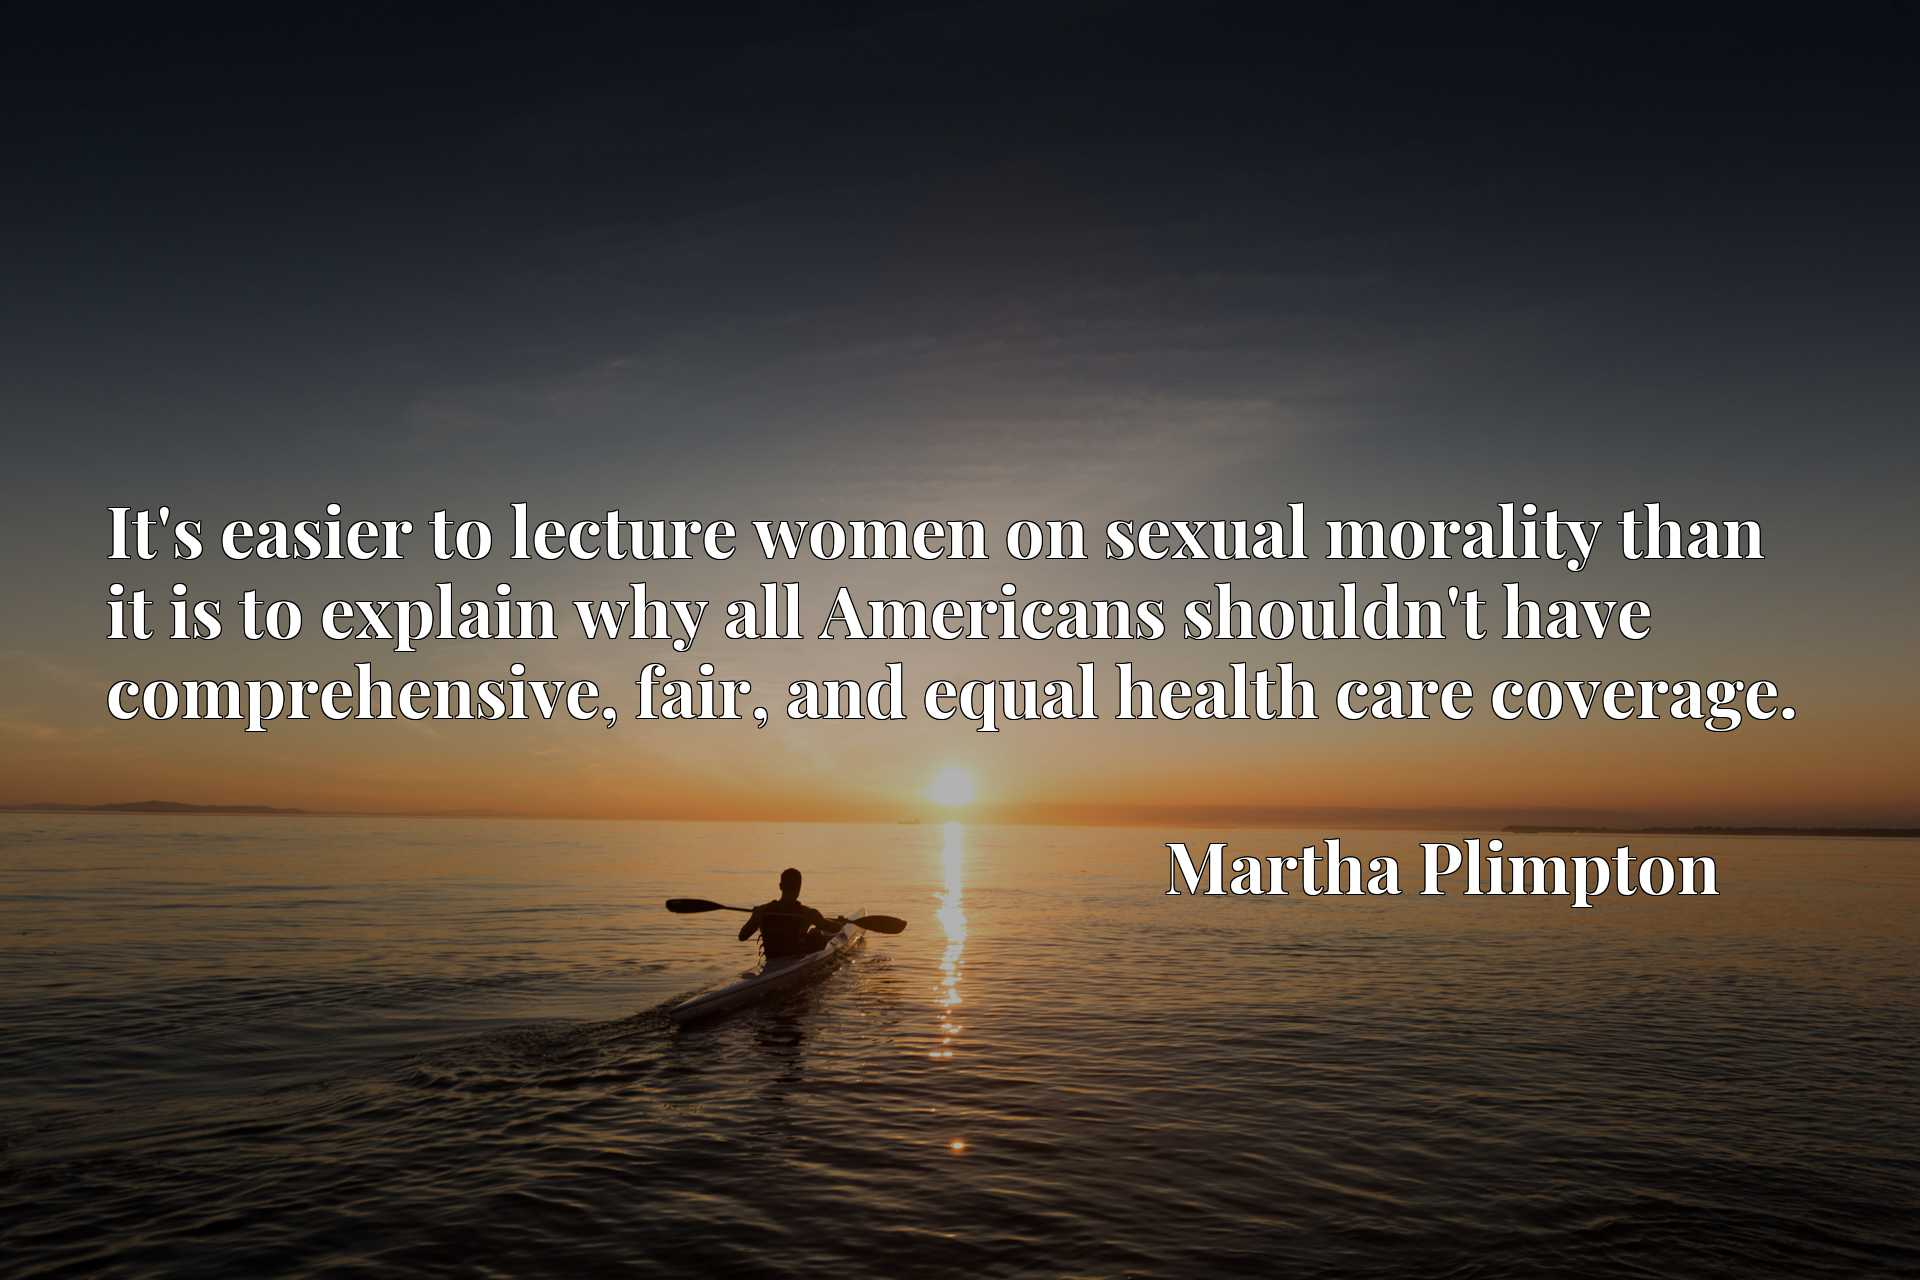 It's easier to lecture women on sexual morality than it is to explain why all Americans shouldn't have comprehensive, fair, and equal health care coverage.